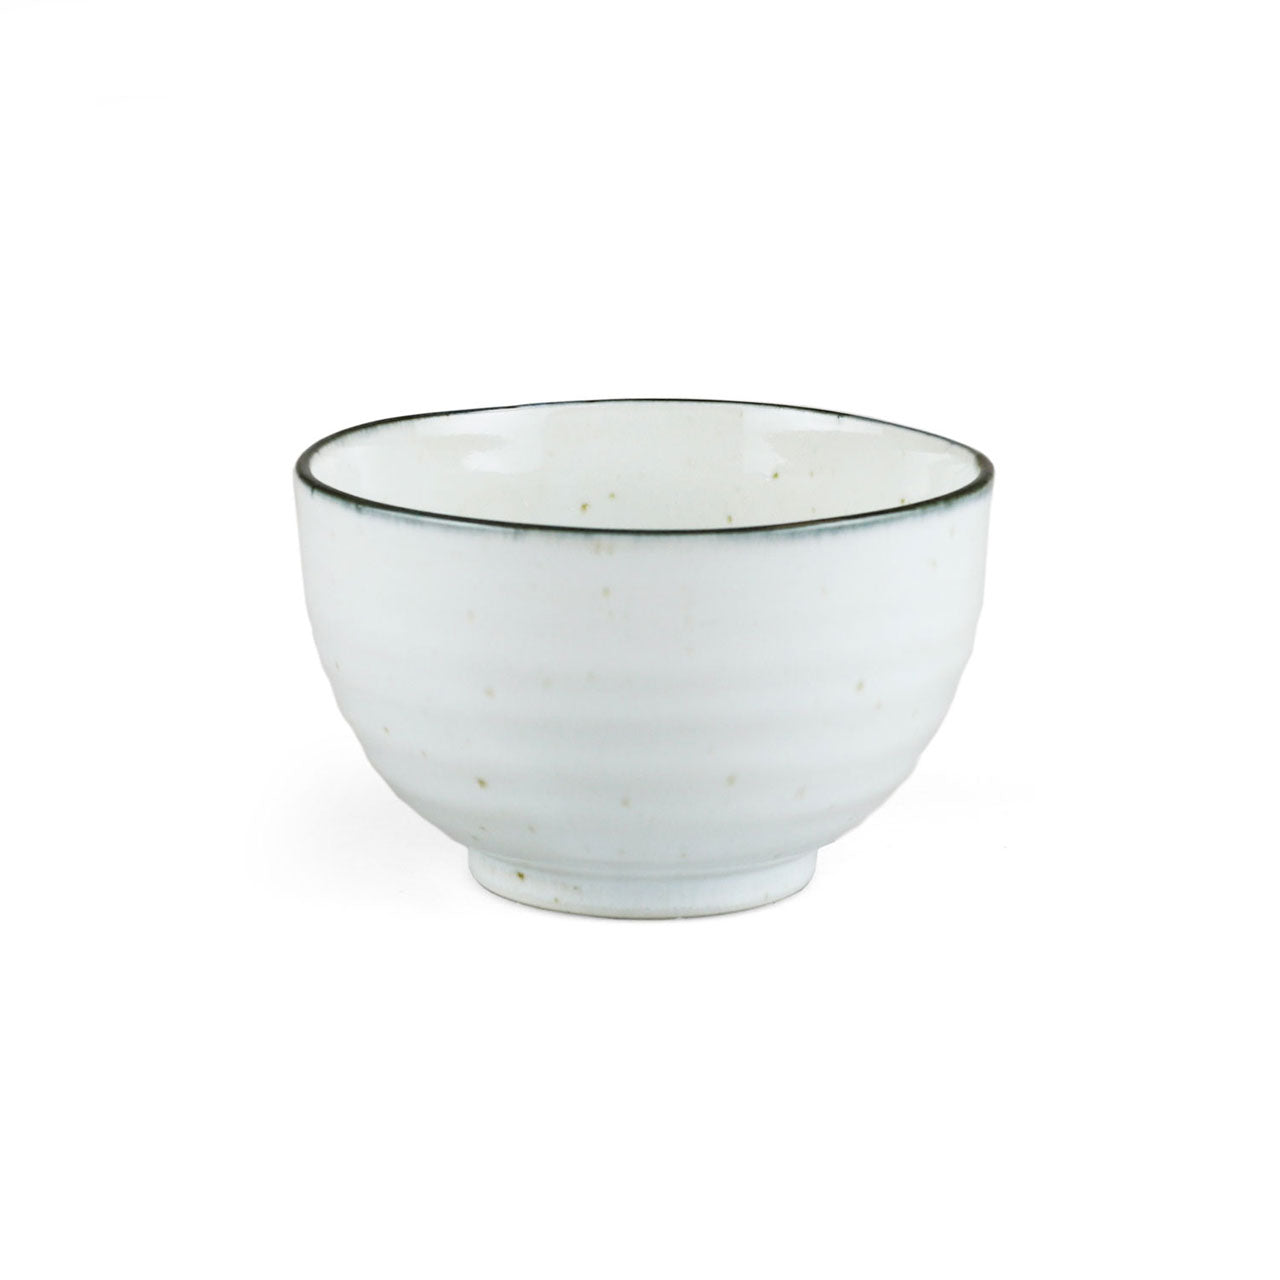 "Shirokinyo Ivory Speckled Donburi Bowl with Indigo Rim 20 fl oz / 5.08"" dia"